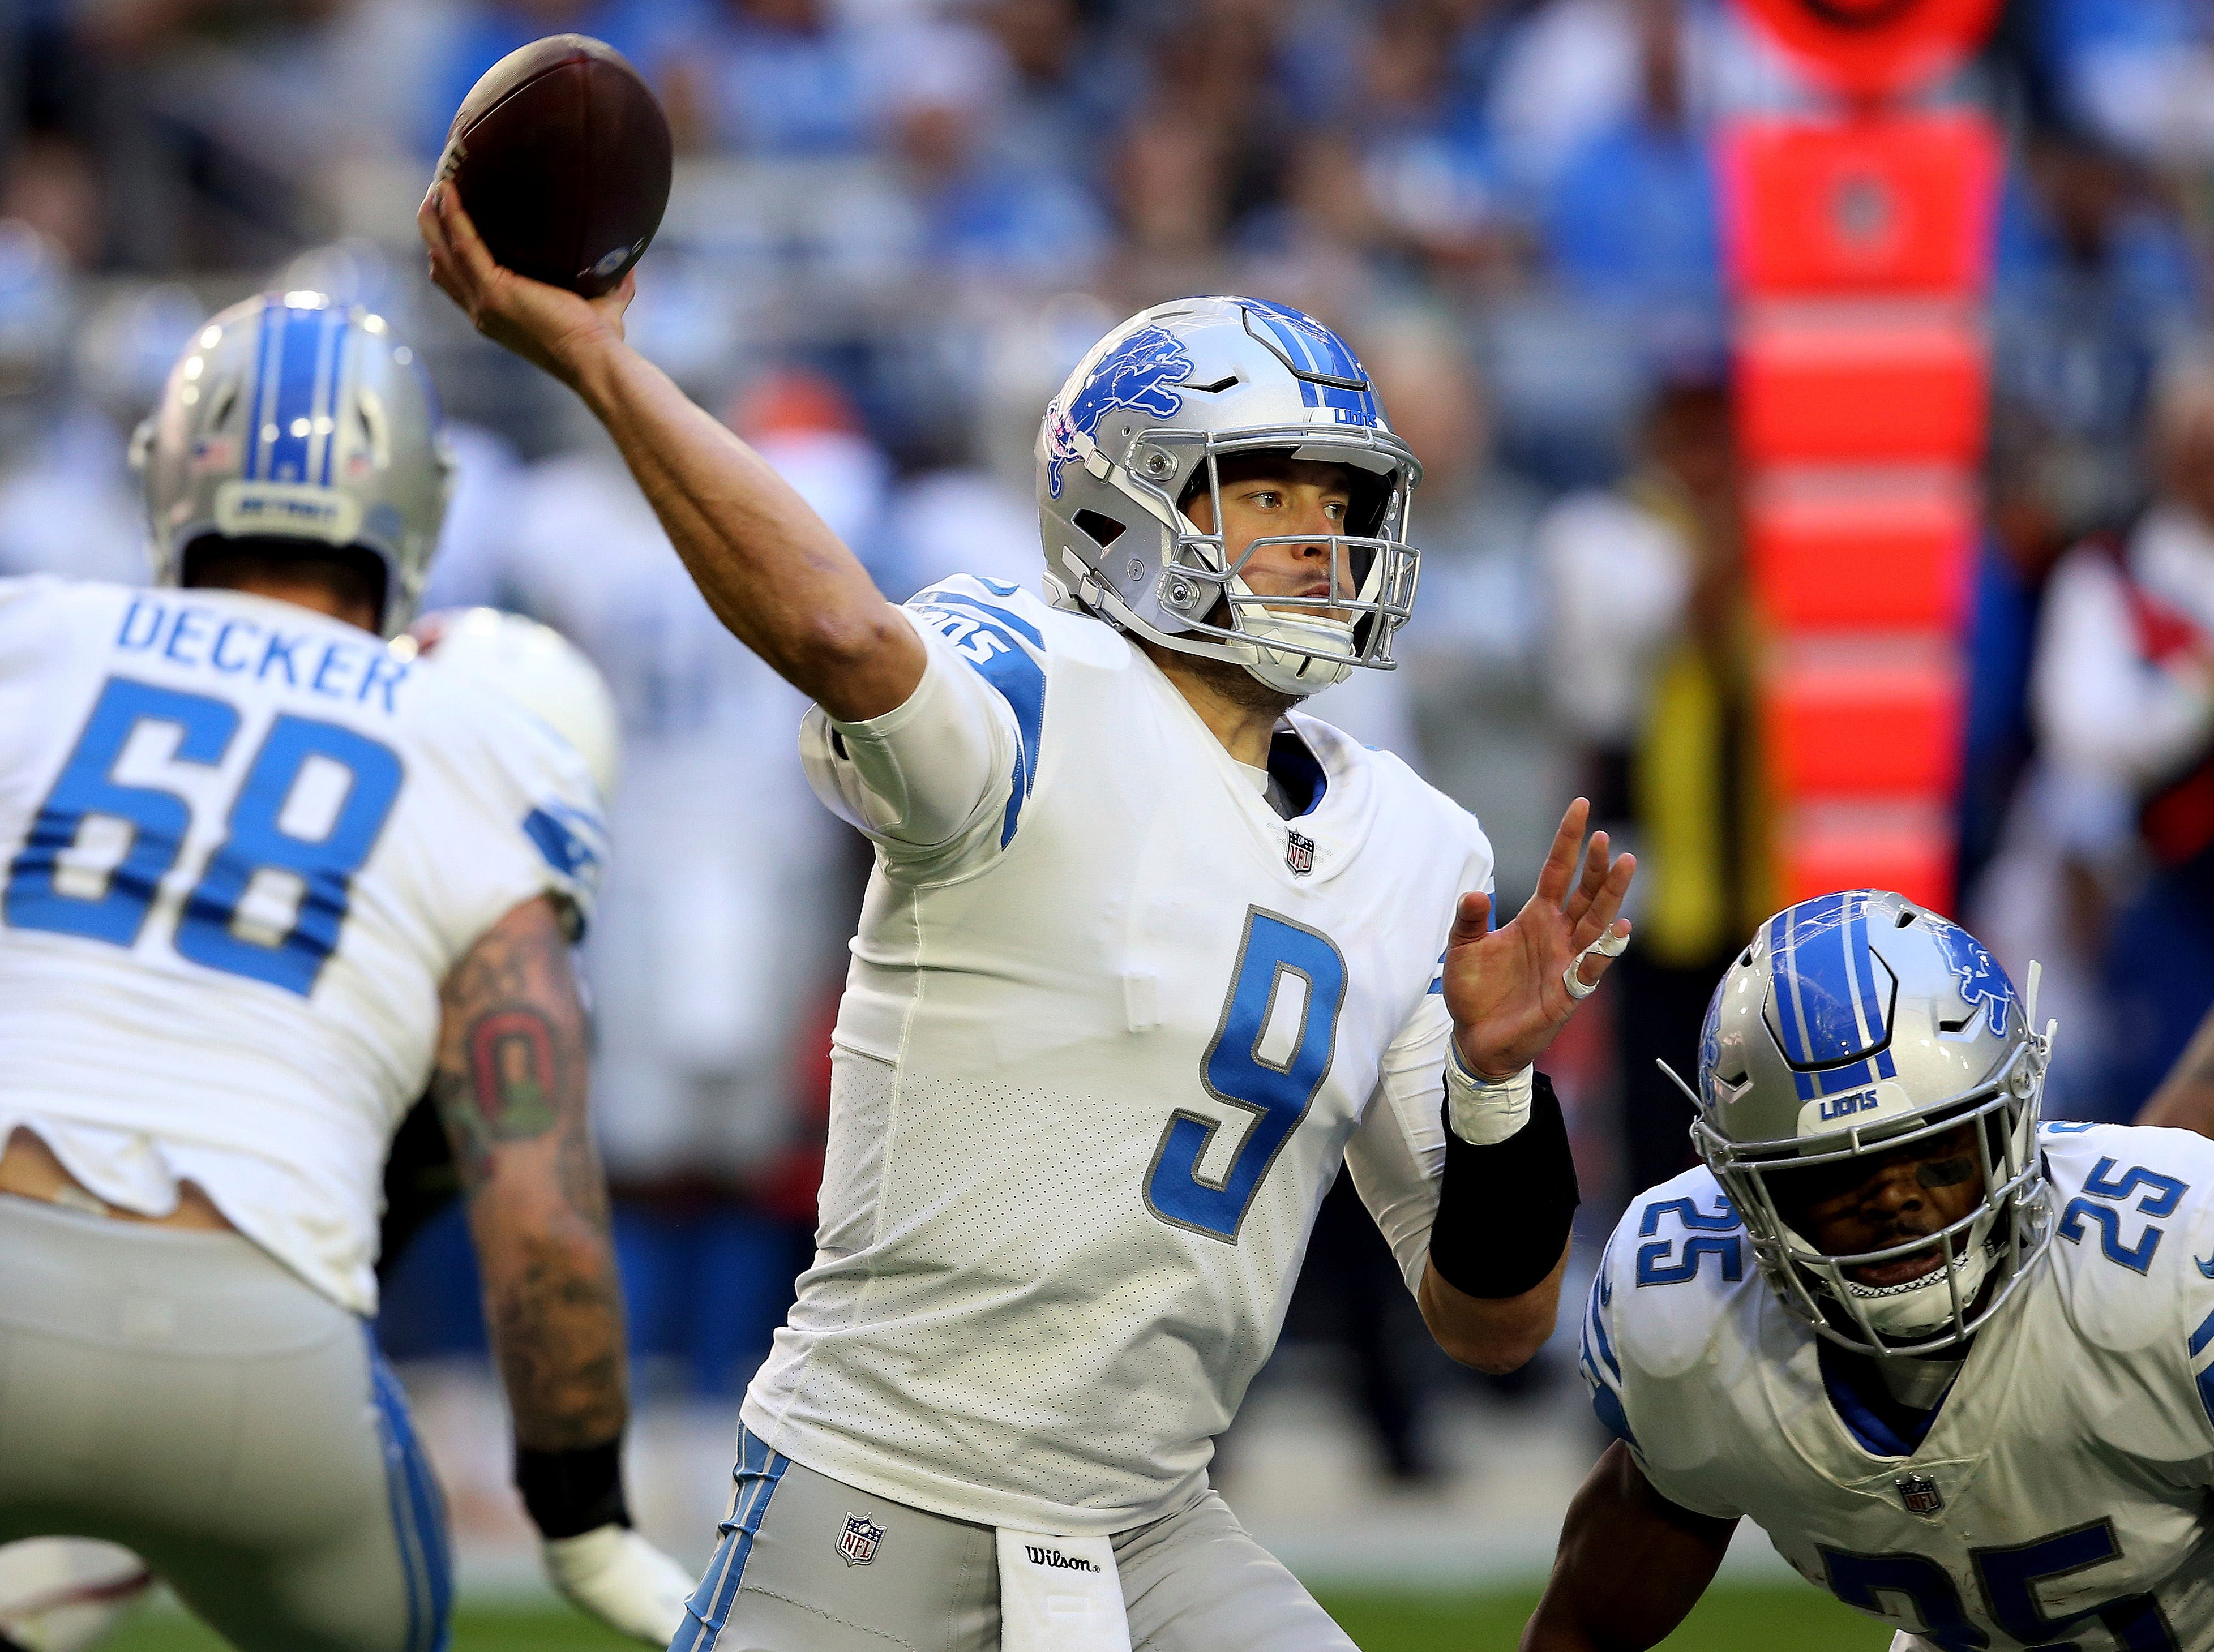 Detroit Lions quarterback Matthew Stafford (9) throws against the Arizona Cardinals during the first half.